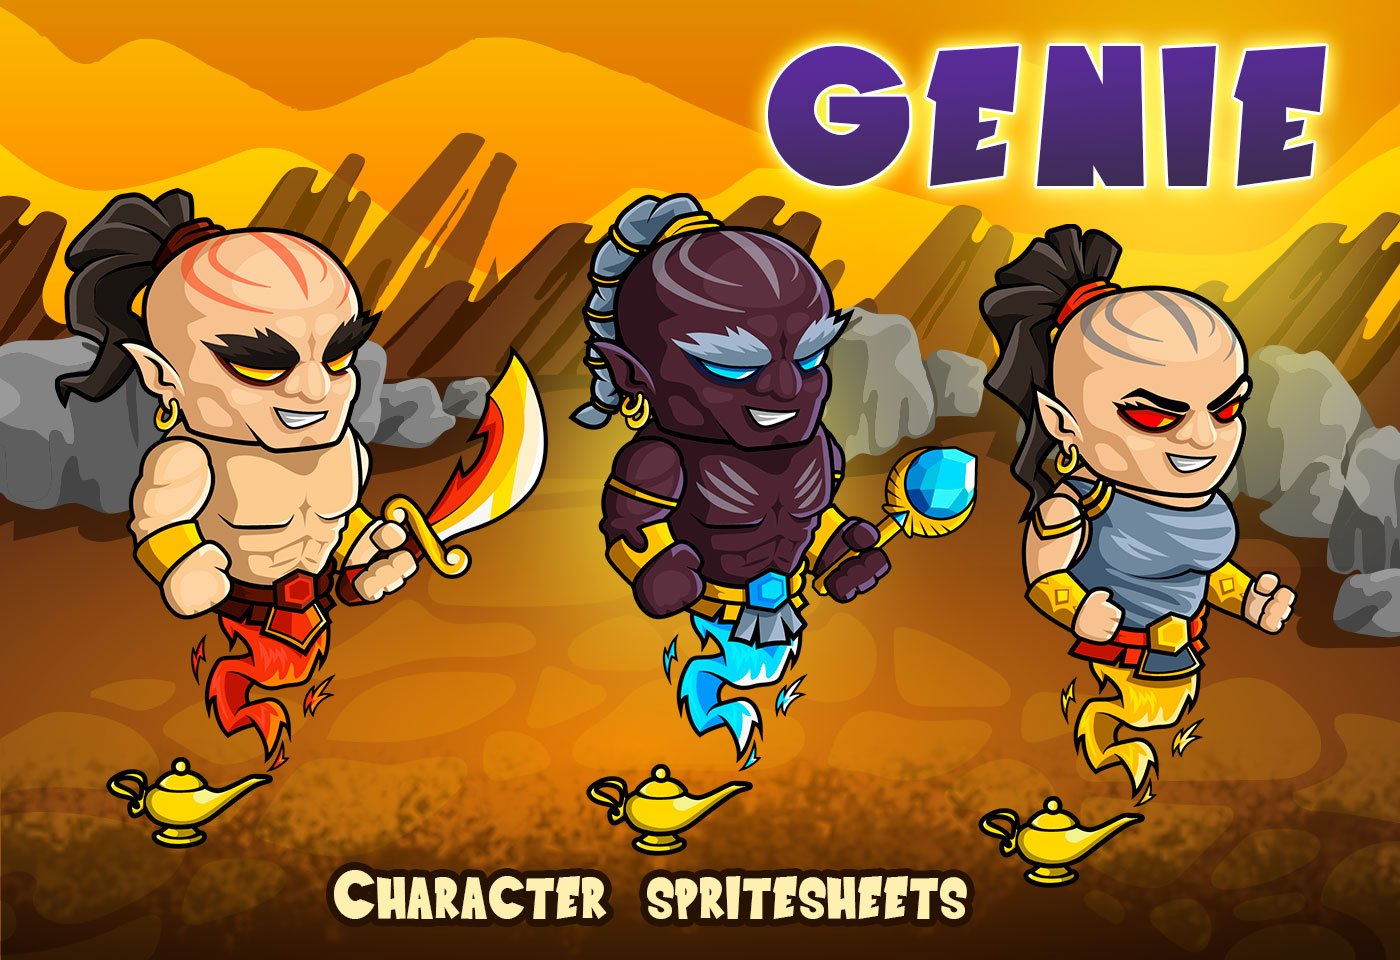 2D Fantasy Genie Character Sprites